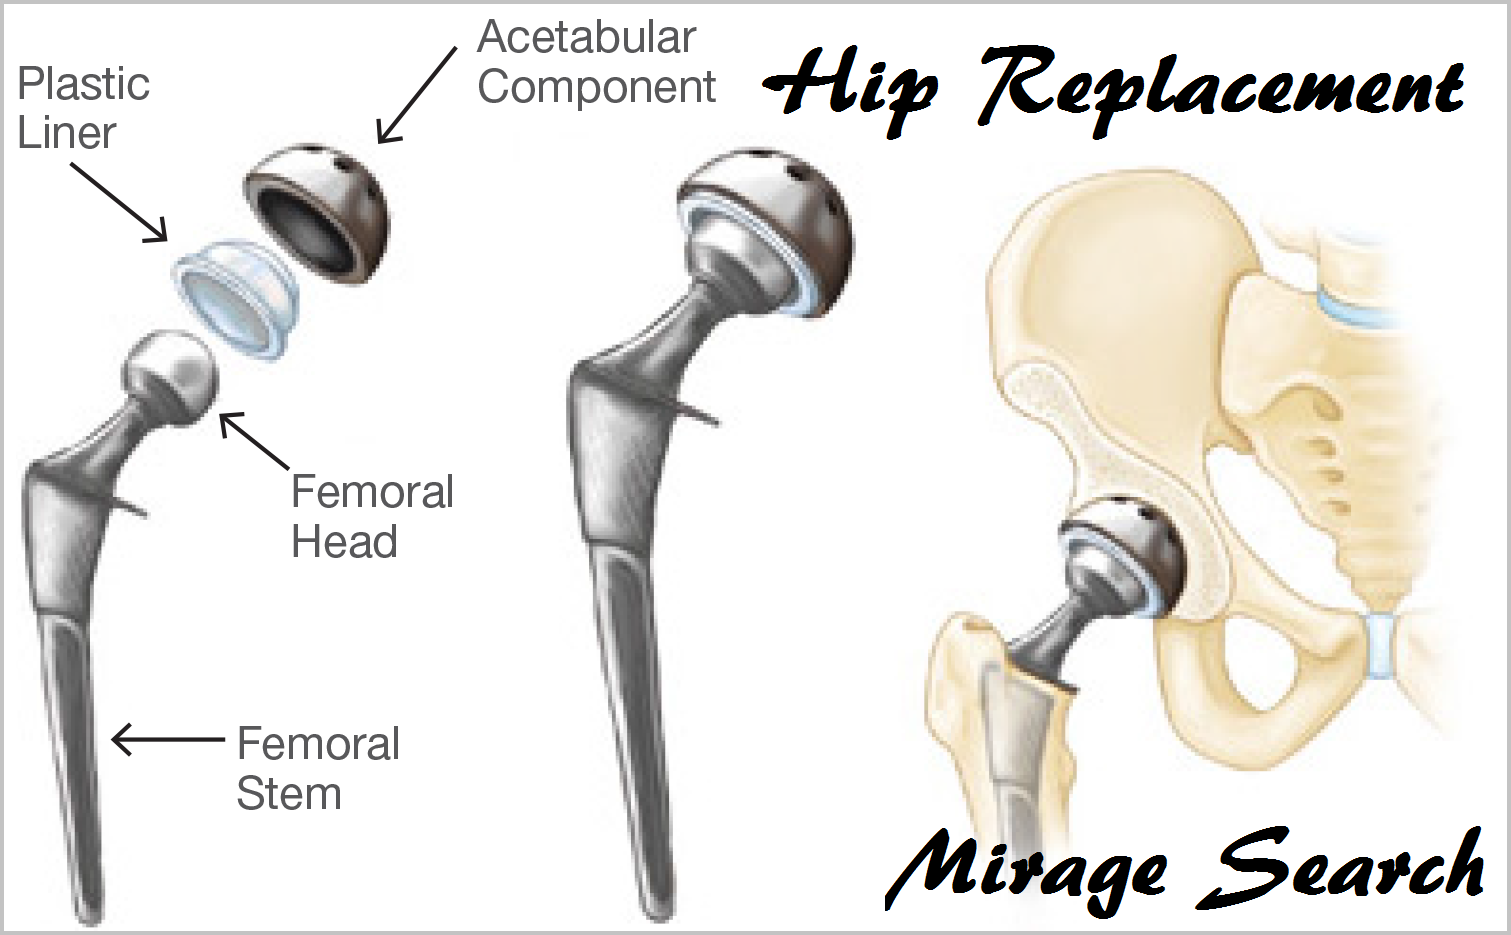 Hip Replacement All Treatment Medium